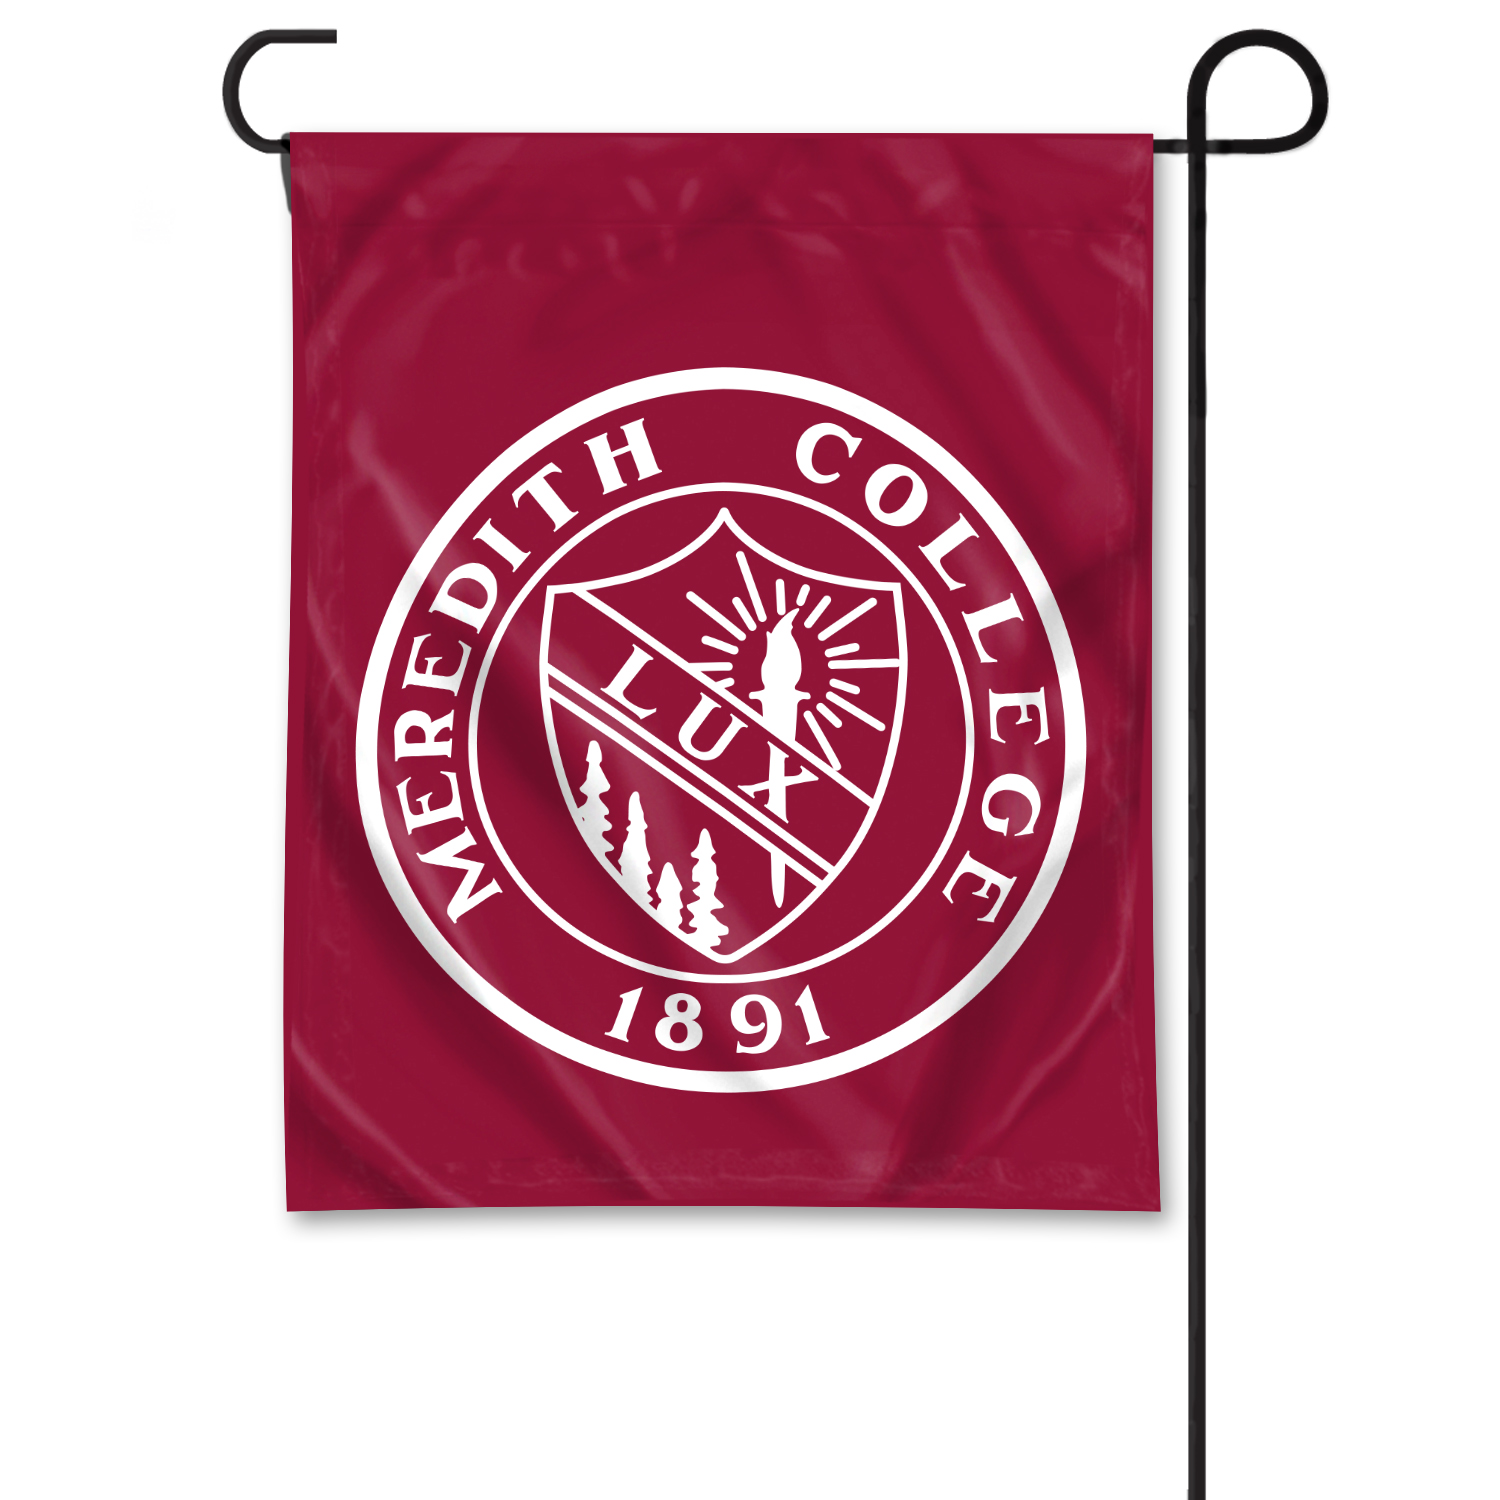 Image for the Garden Flag with Seal product